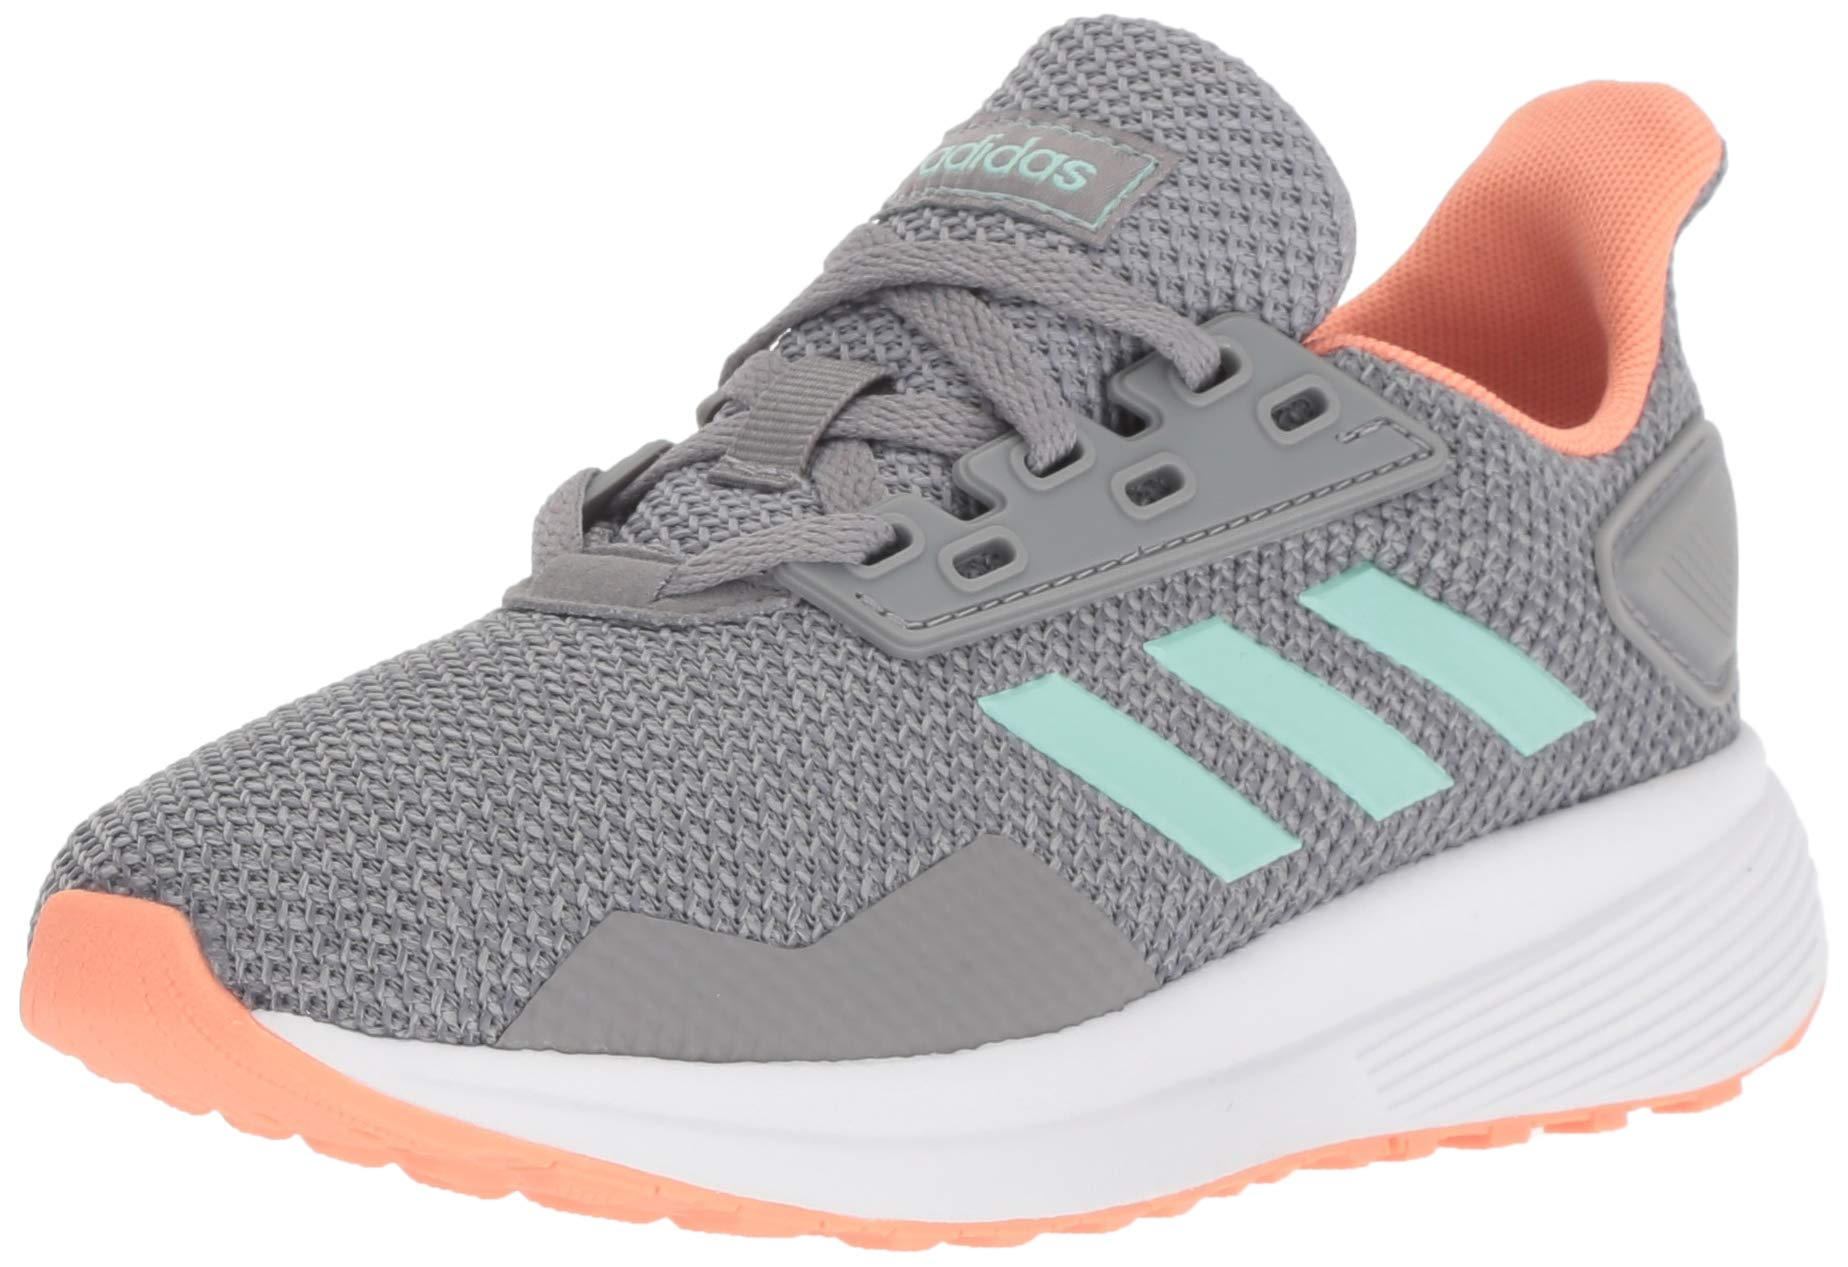 adidas Performance Unisex-Kids Duramo 9 Running Shoe, Grey Heather/Clear Mint/Granite, 13.5K M US Little Kid